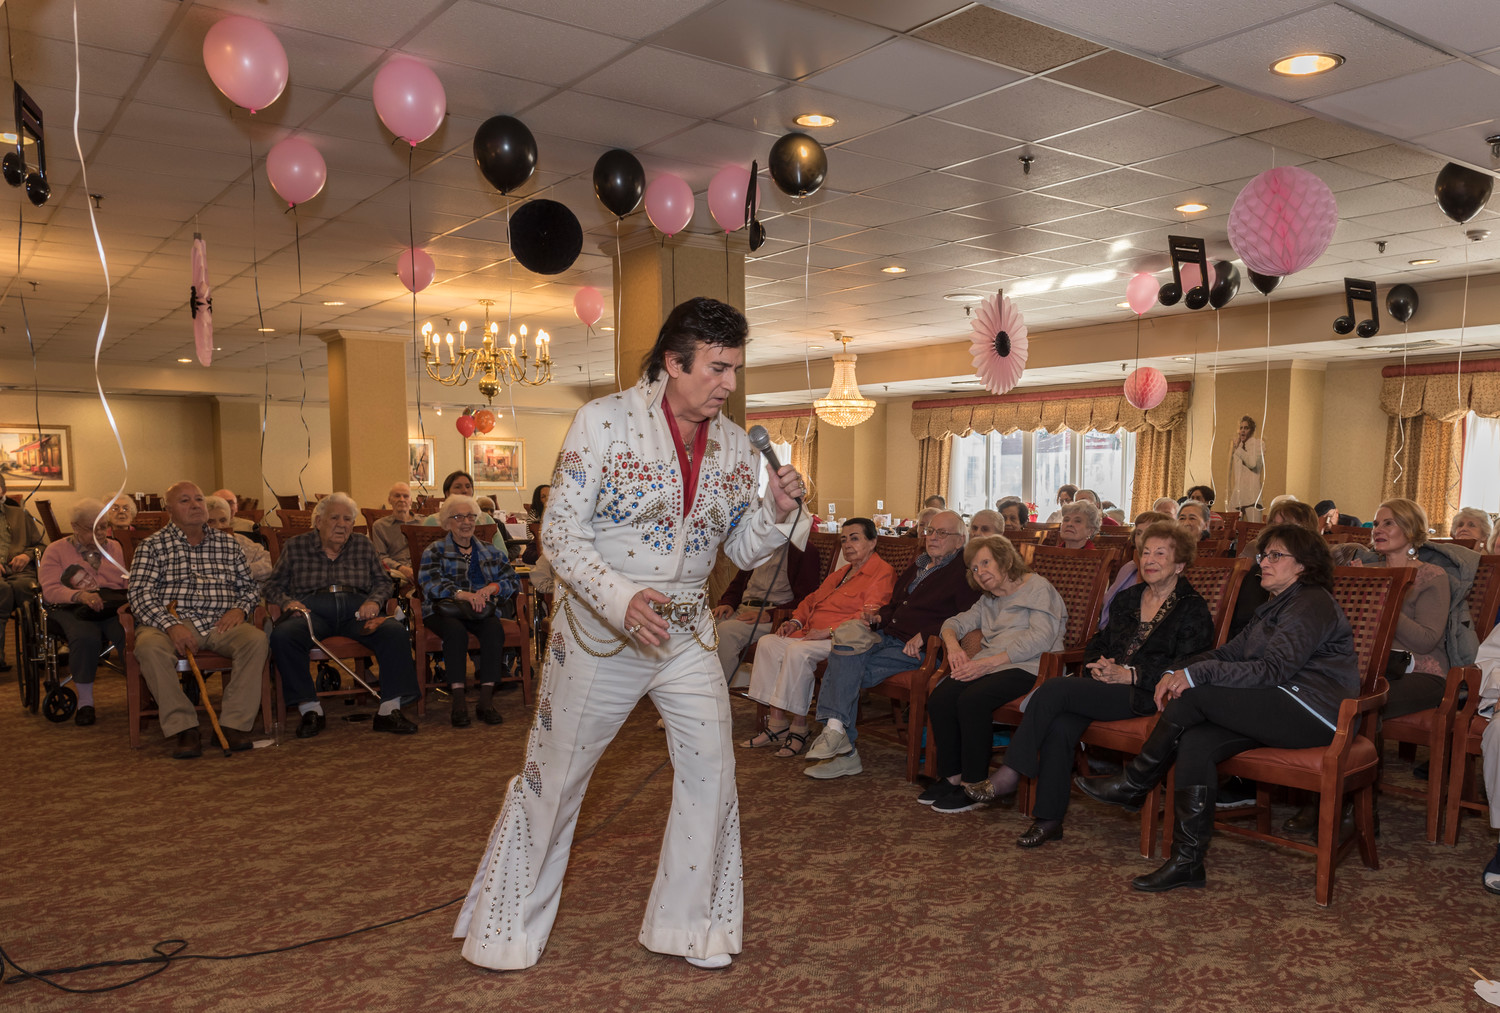 Elvis (Don Anthony) swings his hips as he wows the crowd with classics made famous by the King.